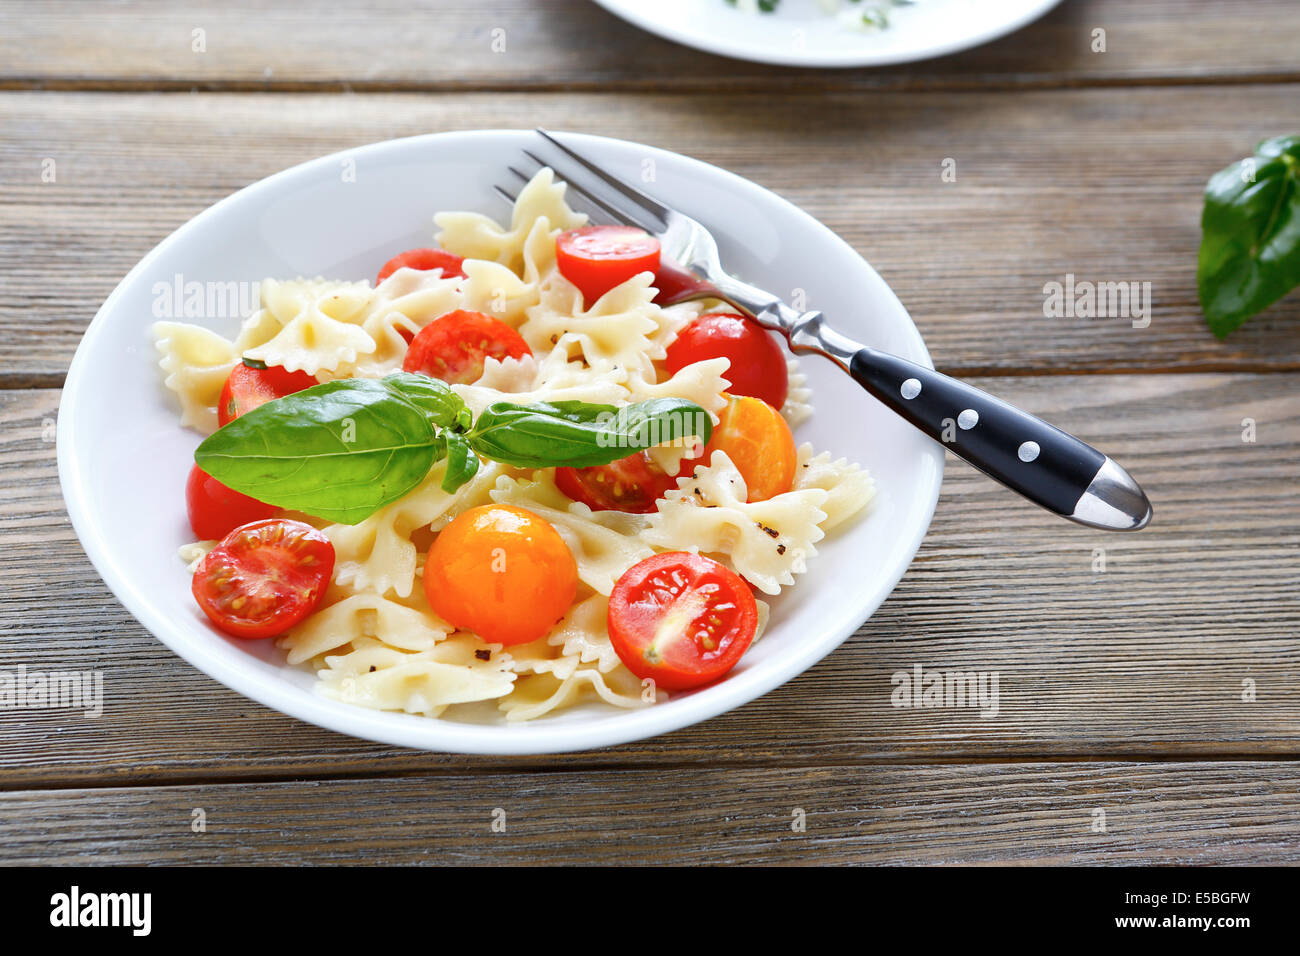 pasta with cherry tomatoes, food - Stock Image